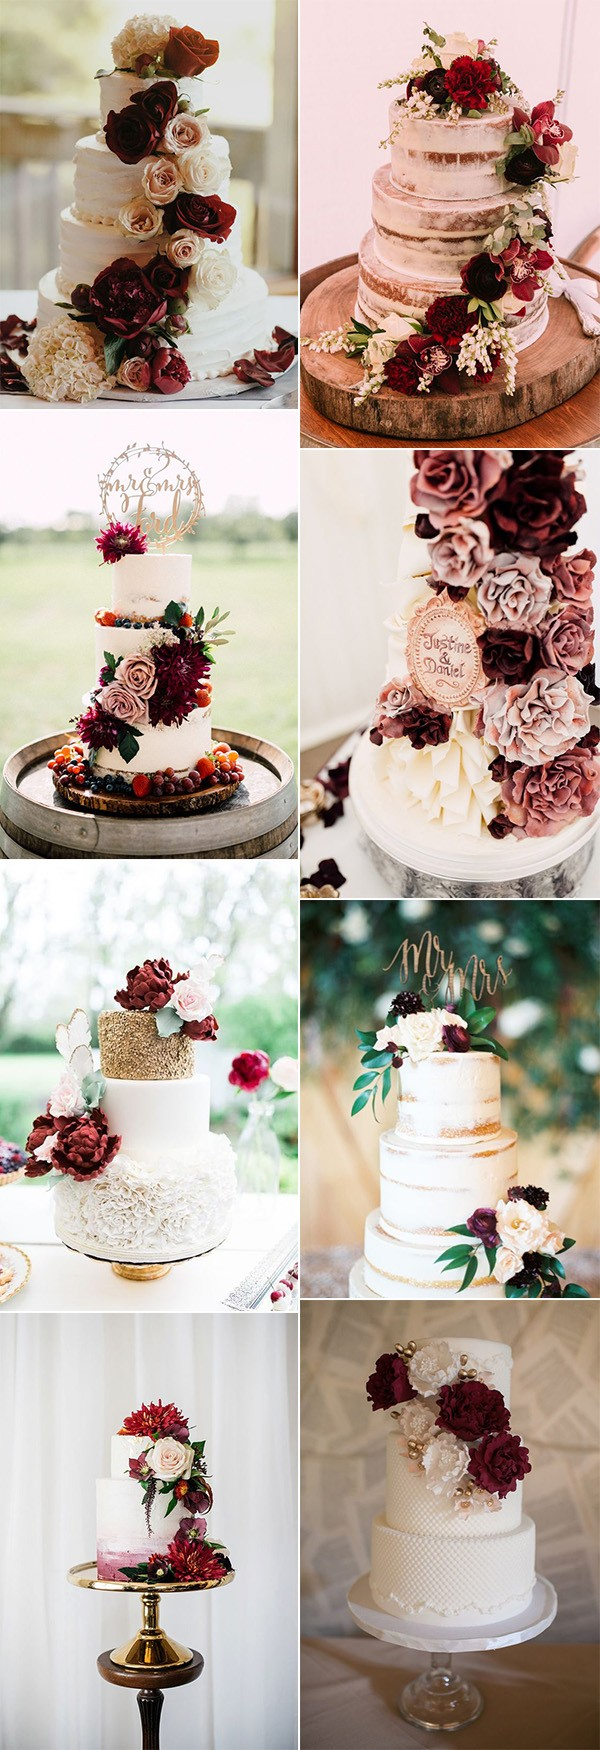 amazing burgundy wedding cakes with floral